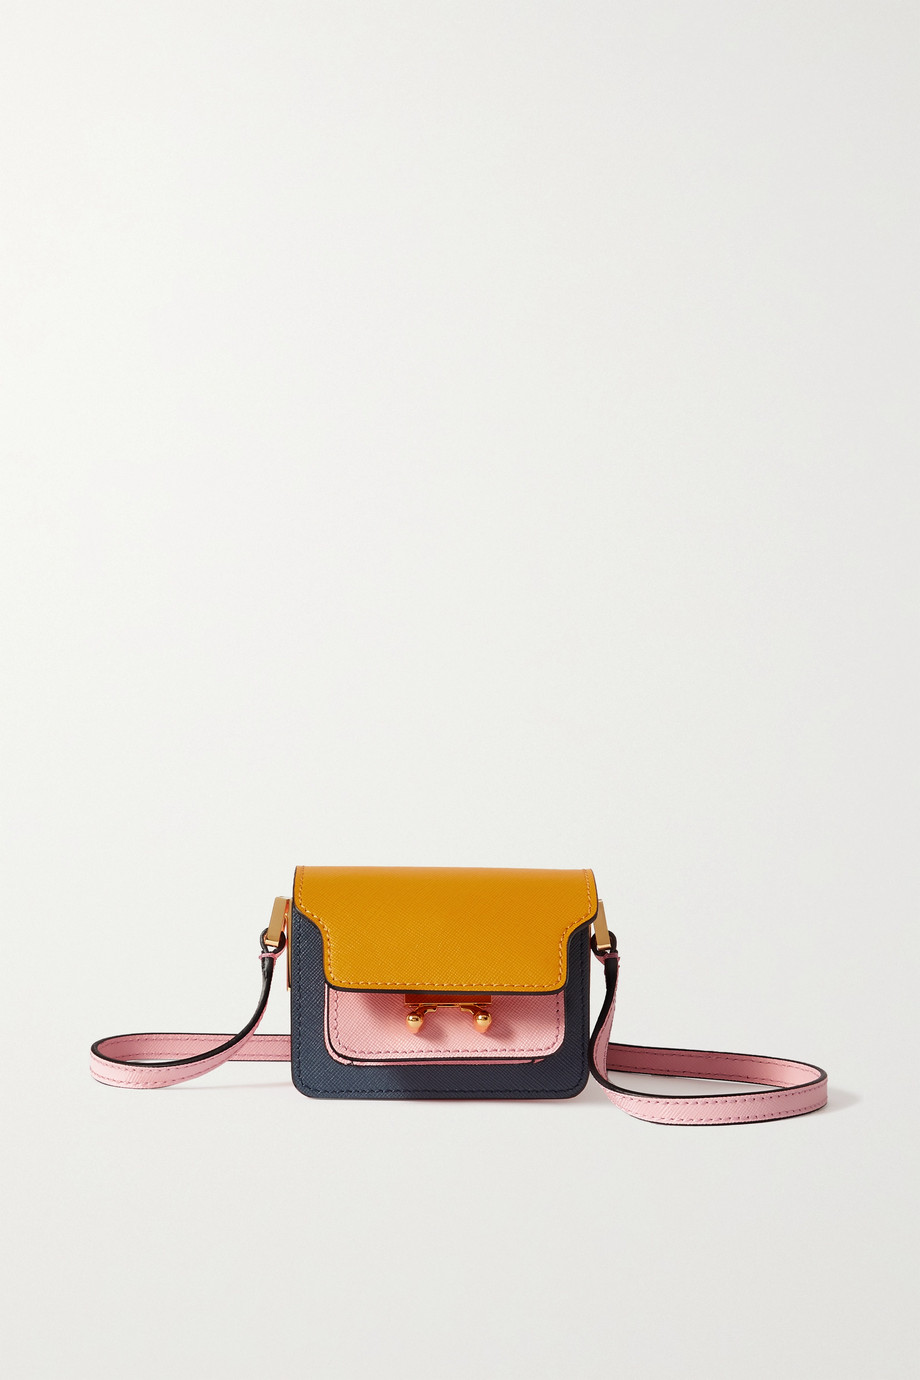 Marni Trunk nano Schultertasche aus strukturiertem Leder in Colour-Block-Optik